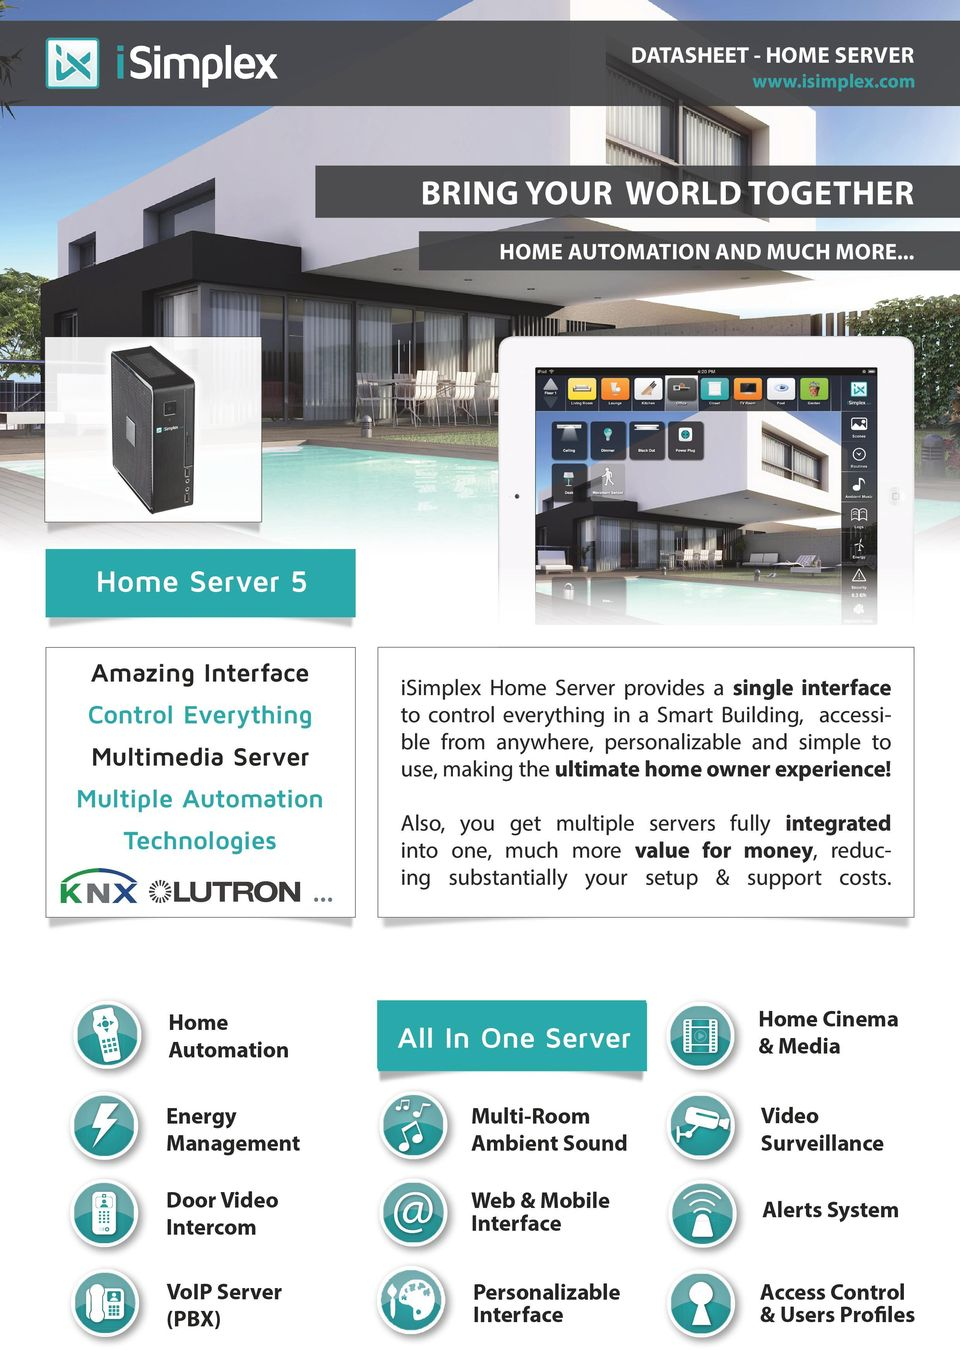 .. Home Server provides a single interface to control everything in a Smart Building, accessible from anywhere, personalizable and